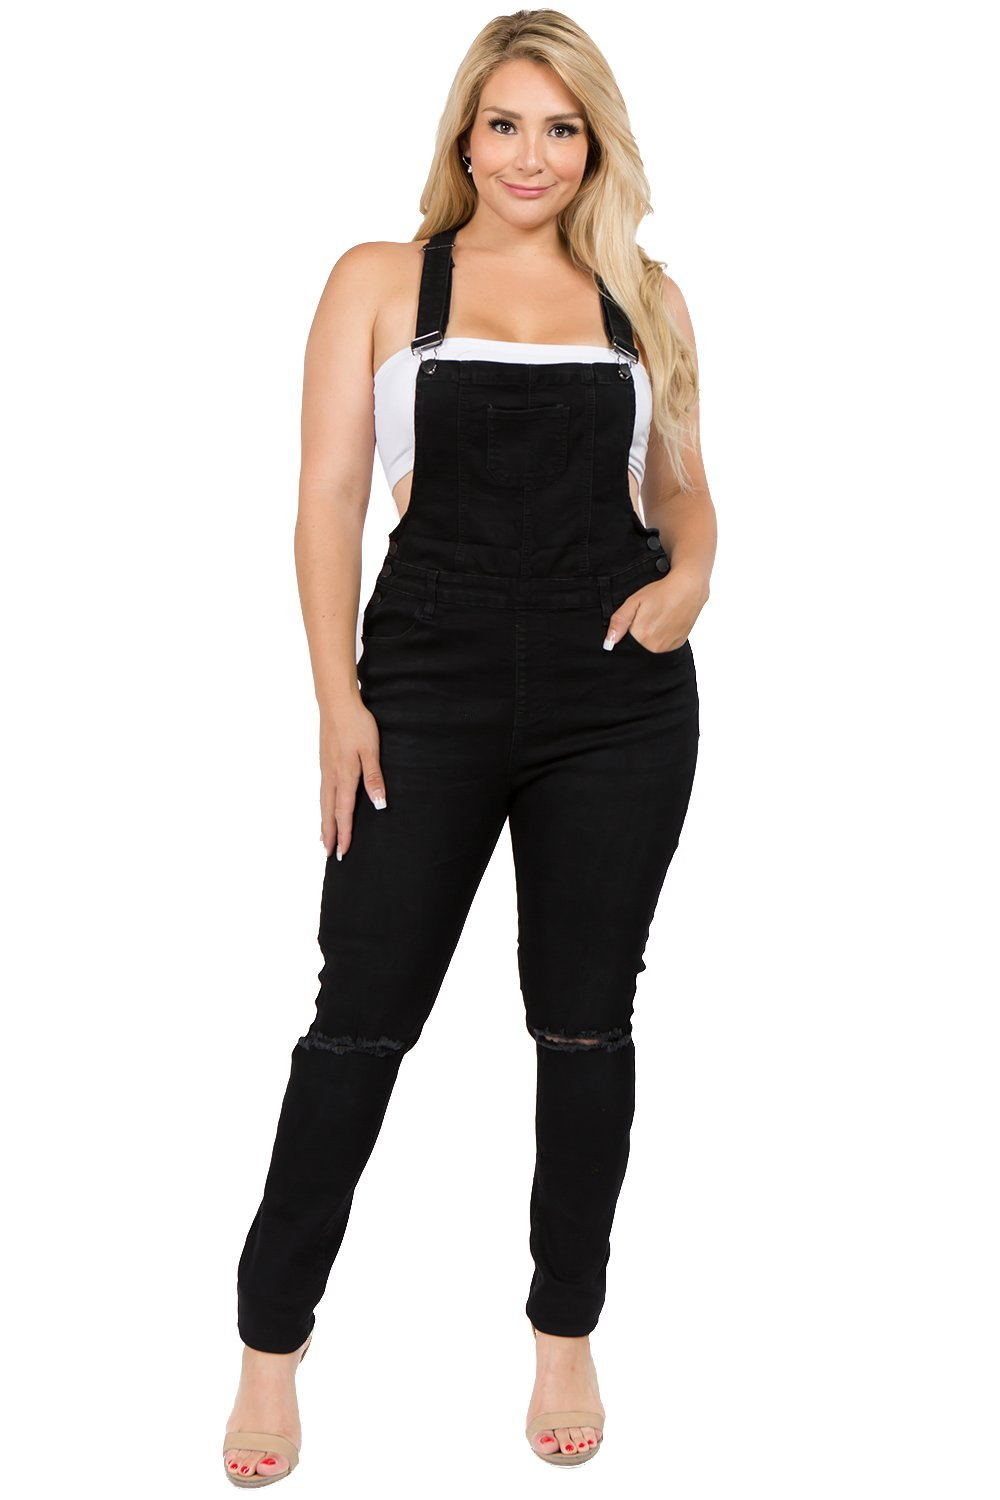 TwiinSisters Women's Plus Size Natural Curve Enhancing Slim Fitted Overalls with Comfort Stretch